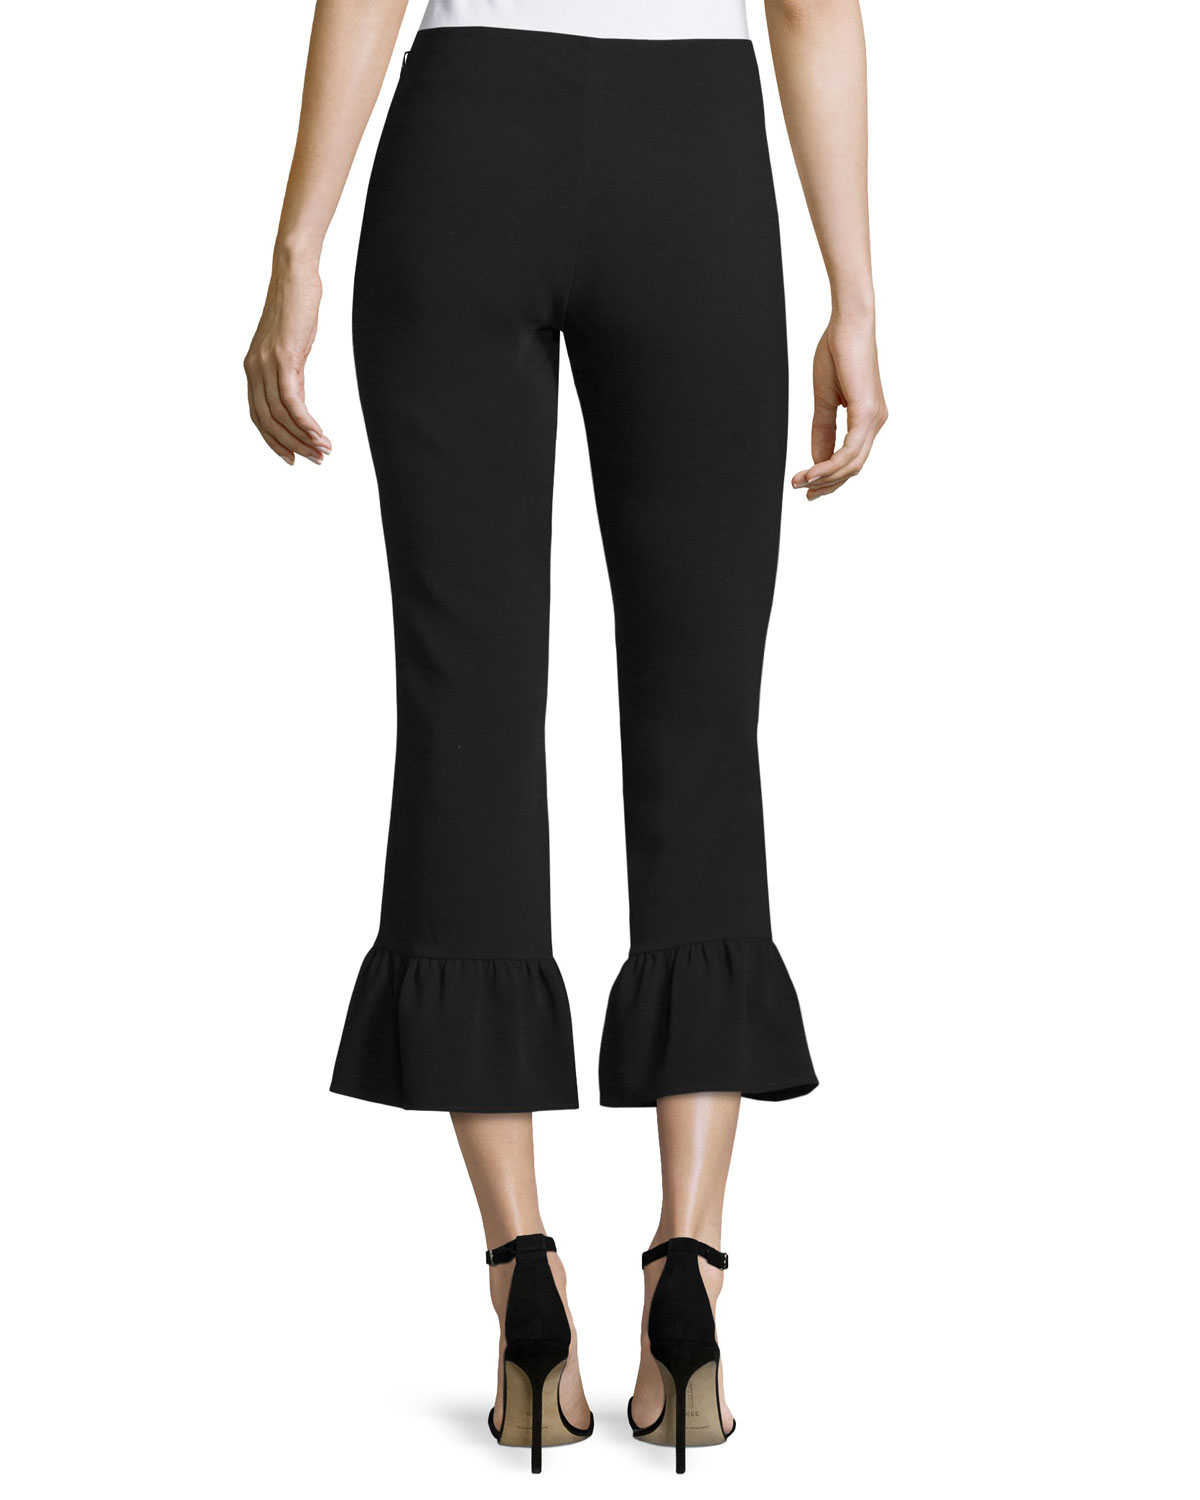 Free shipping on cropped & capri pants for women a humorrmundiall.ga Shop by rise, material, size and more from the best brands. Free shipping & returns.